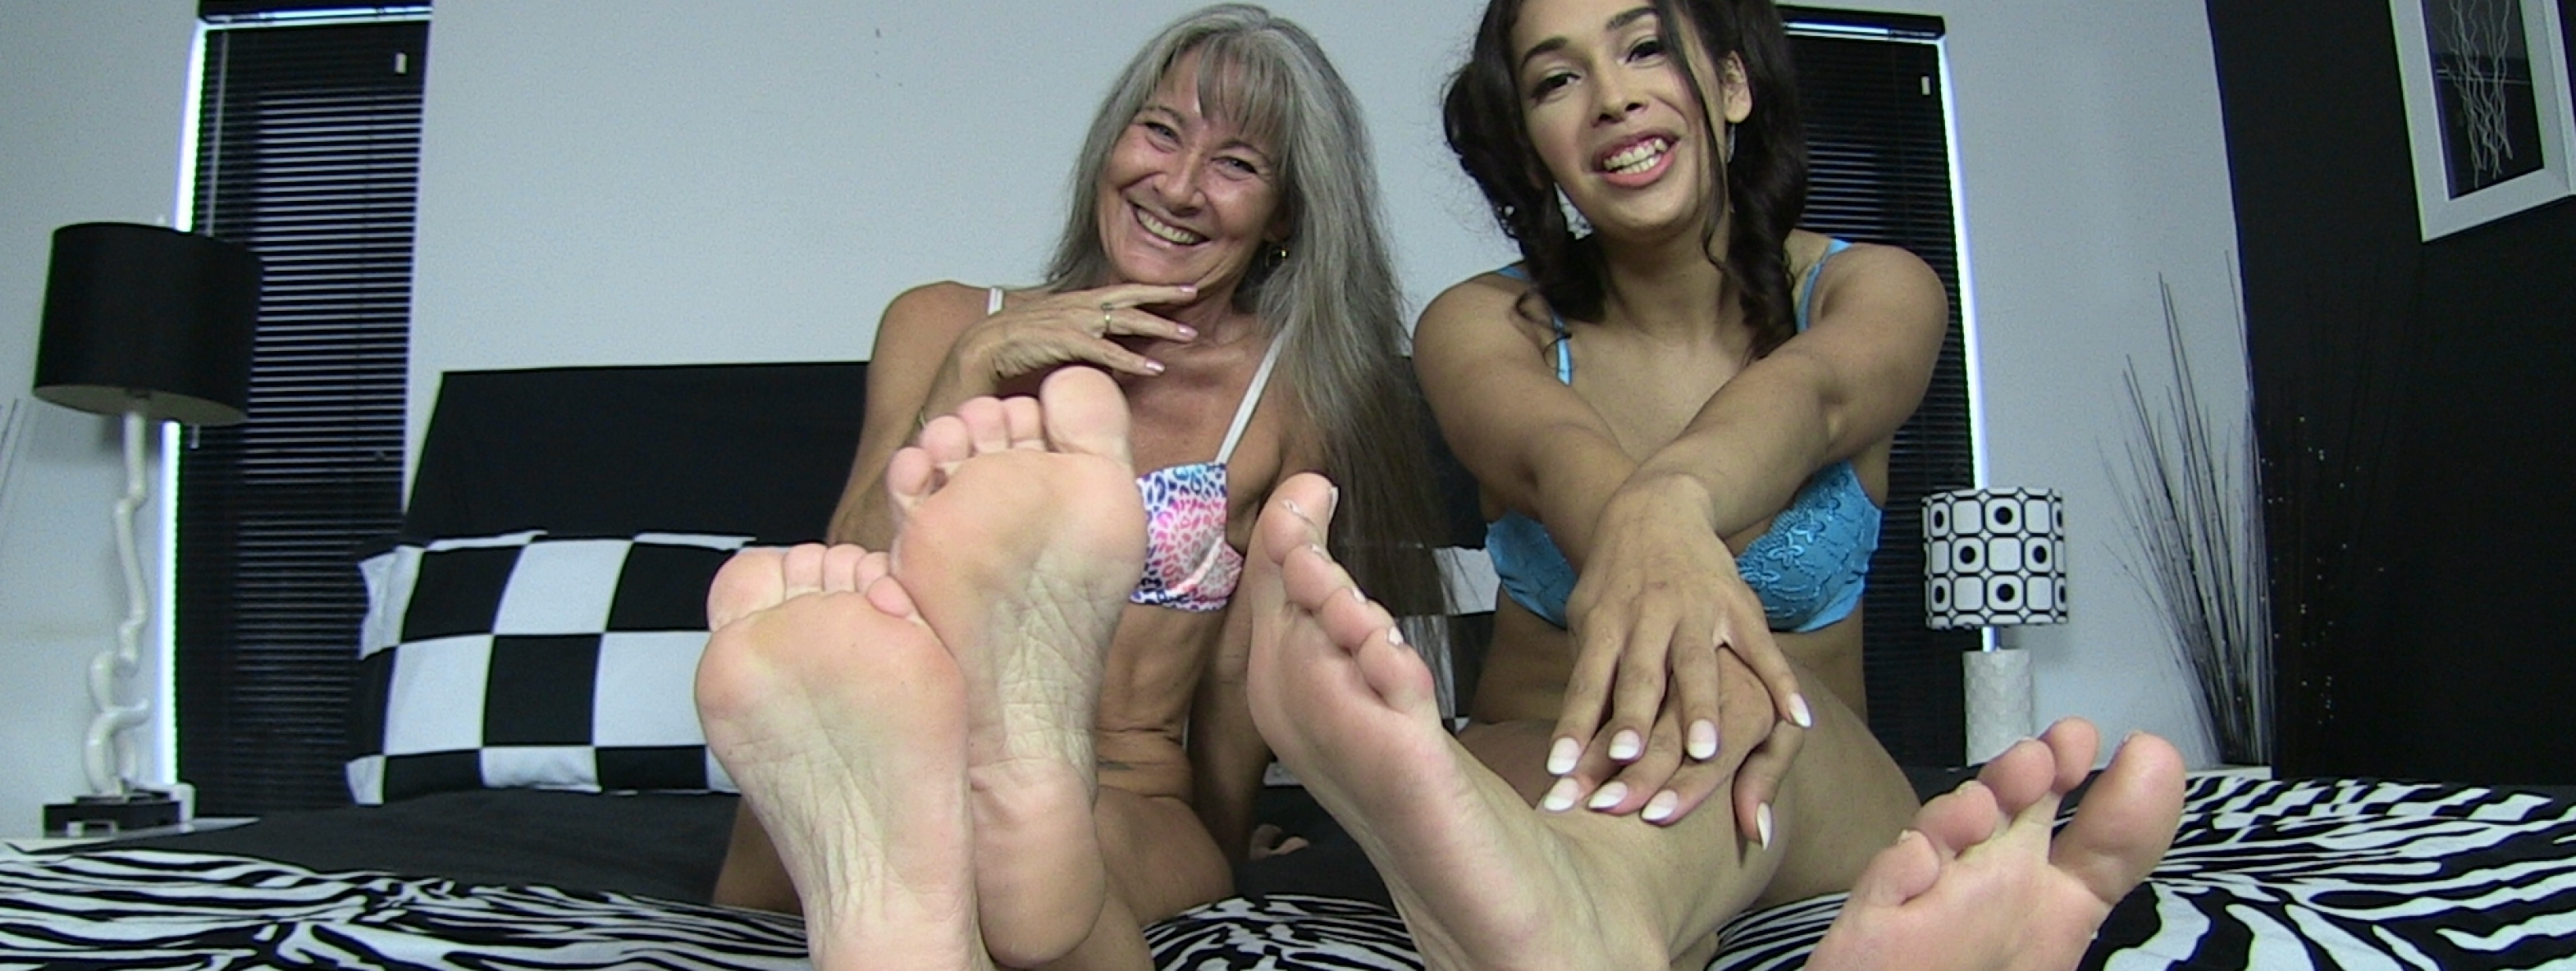 content/pov_foot_worship_joi_7/8.jpg